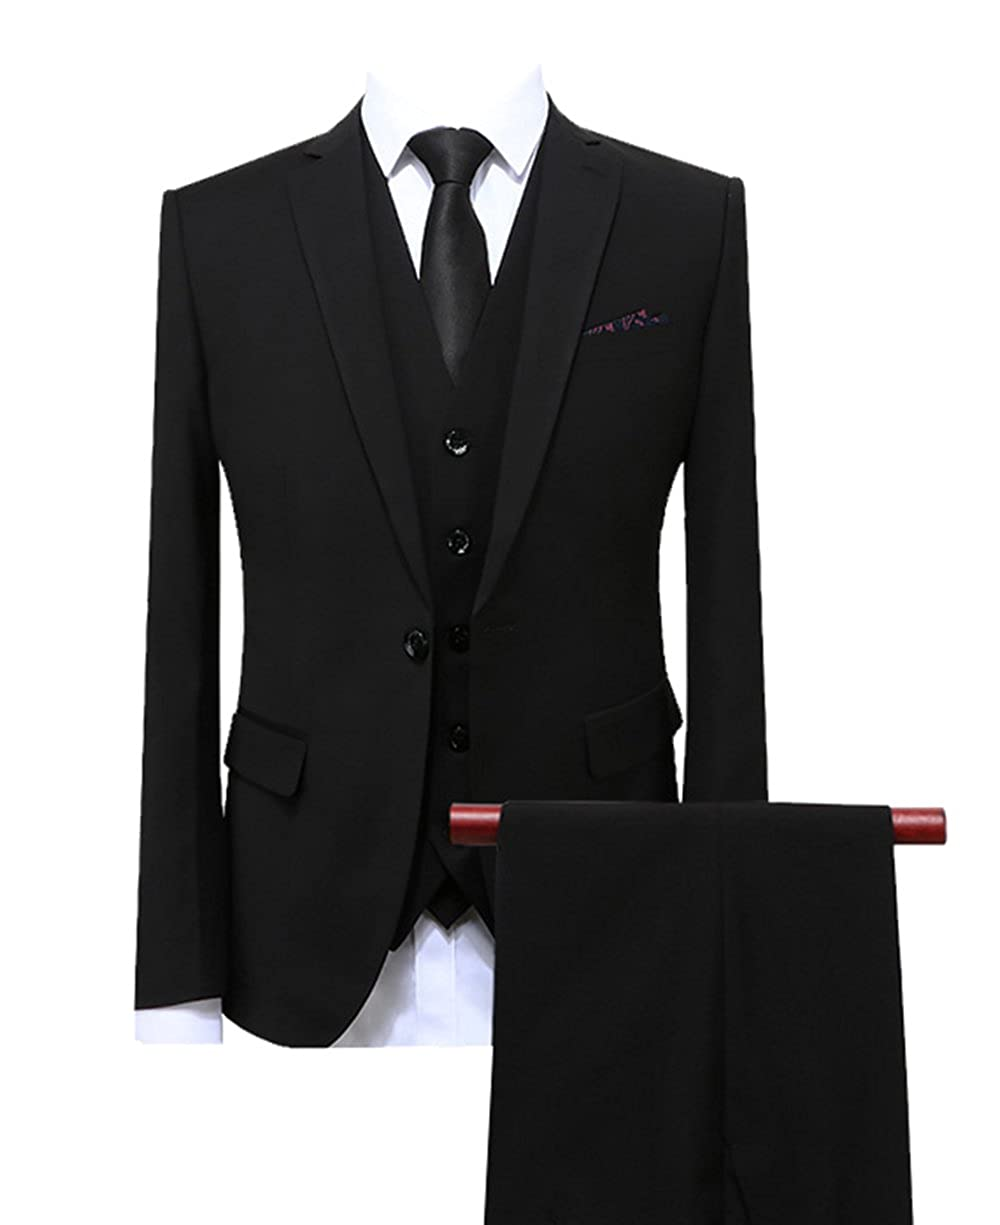 Fitty Lell Mens Suit 3-Piece Bridegroom Tuxedo Slim Fit Best Men Wedding Suit